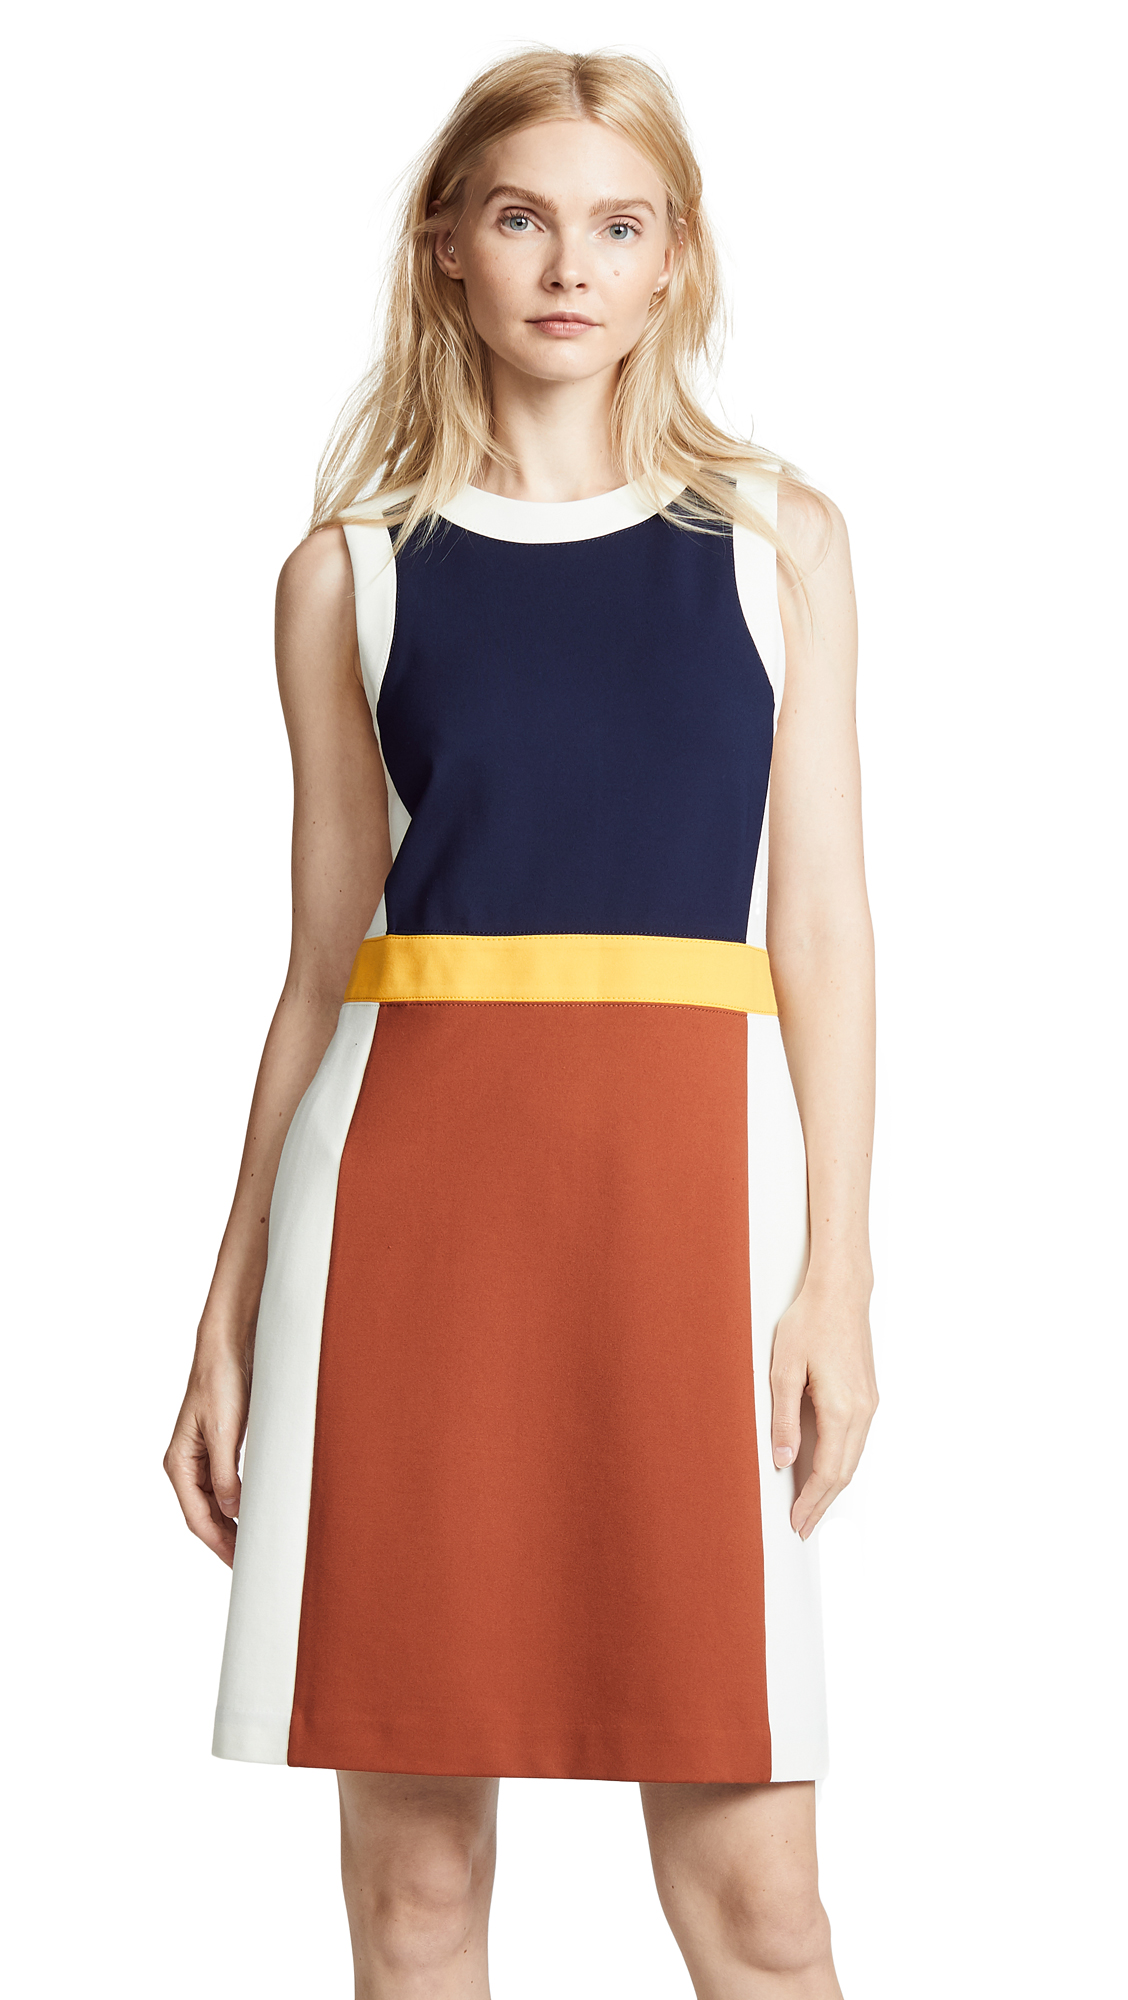 Tory Burch Mya Dress In Desert Spice